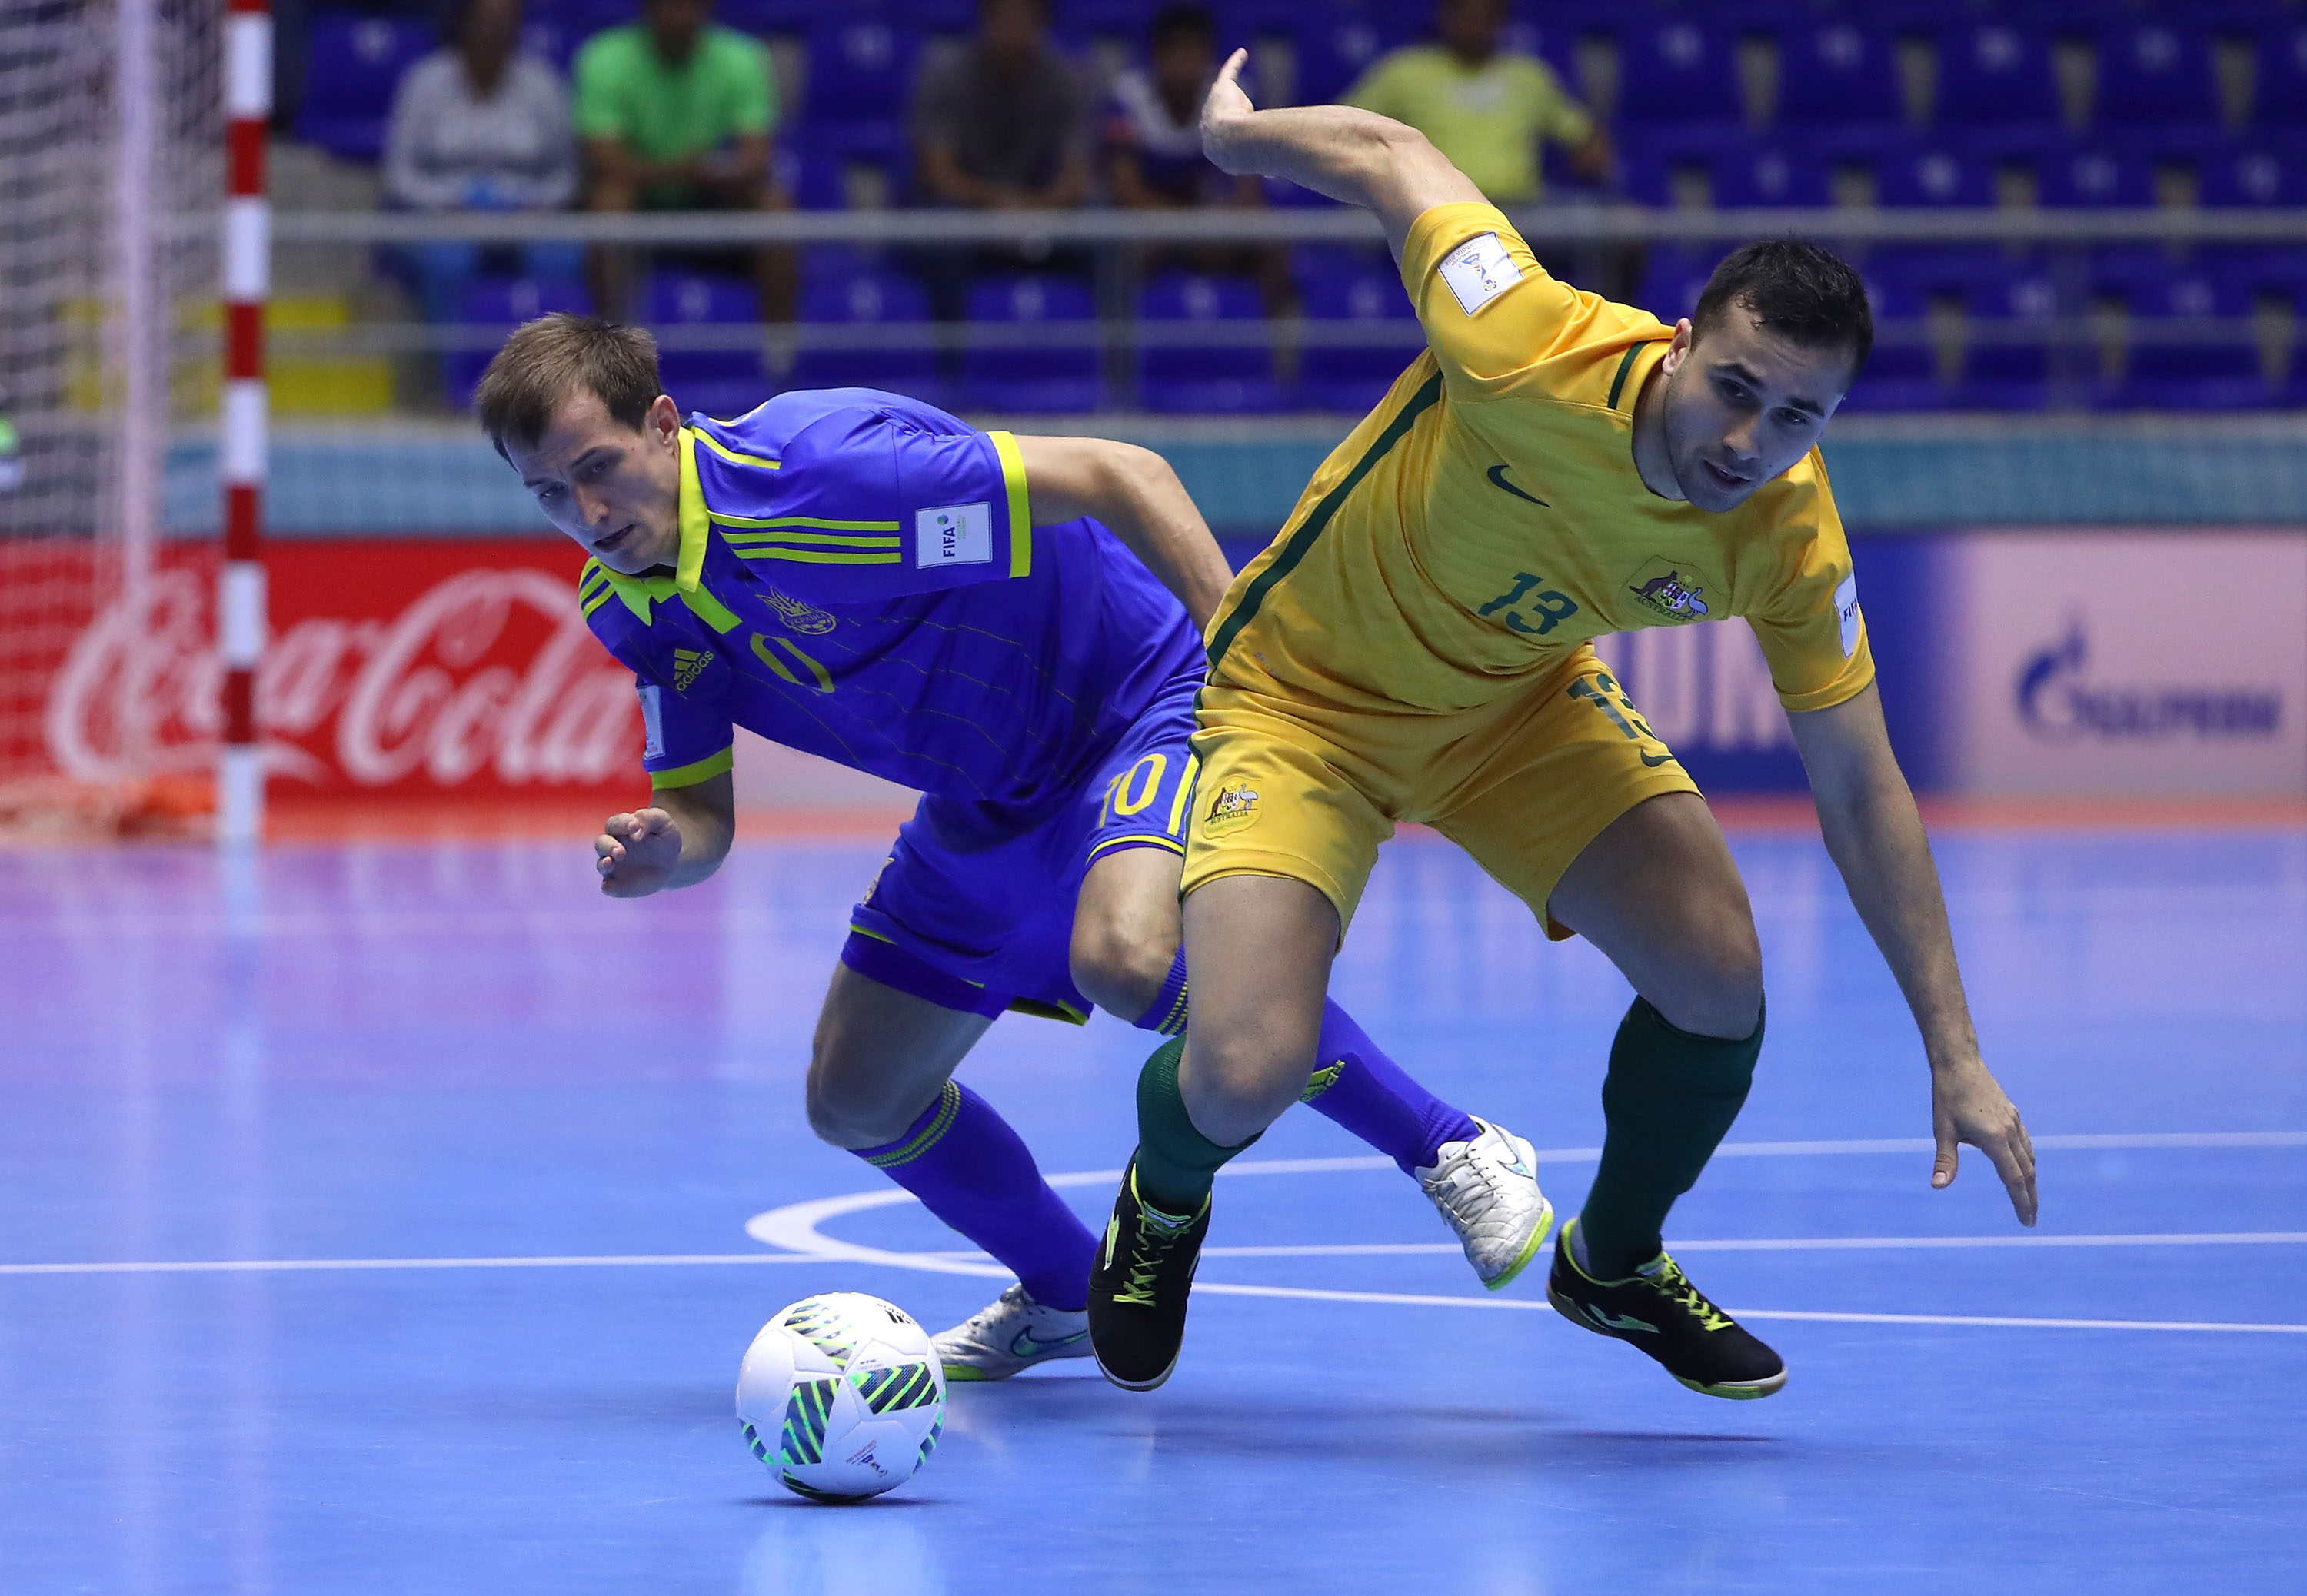 Shervin plays for Australia against Ukraine at the 2016 FIFA Futsal World Cup in Colombia.